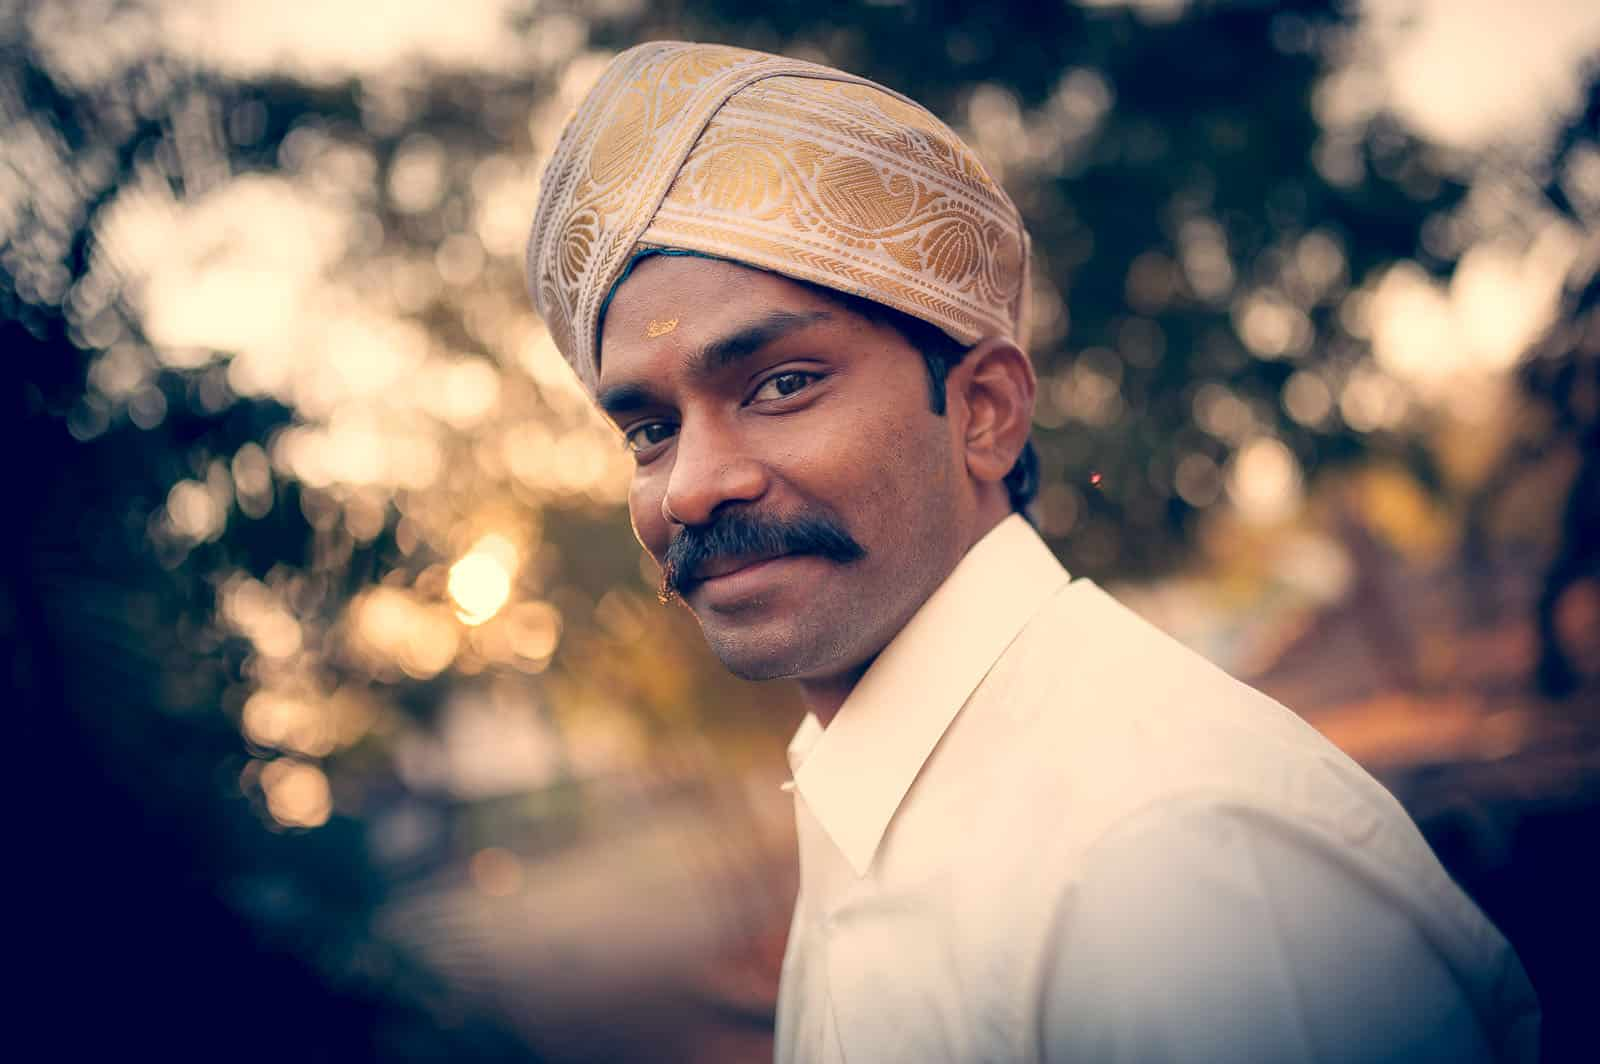 Best Wedding Photographer India | Groom Portrait Photography South India